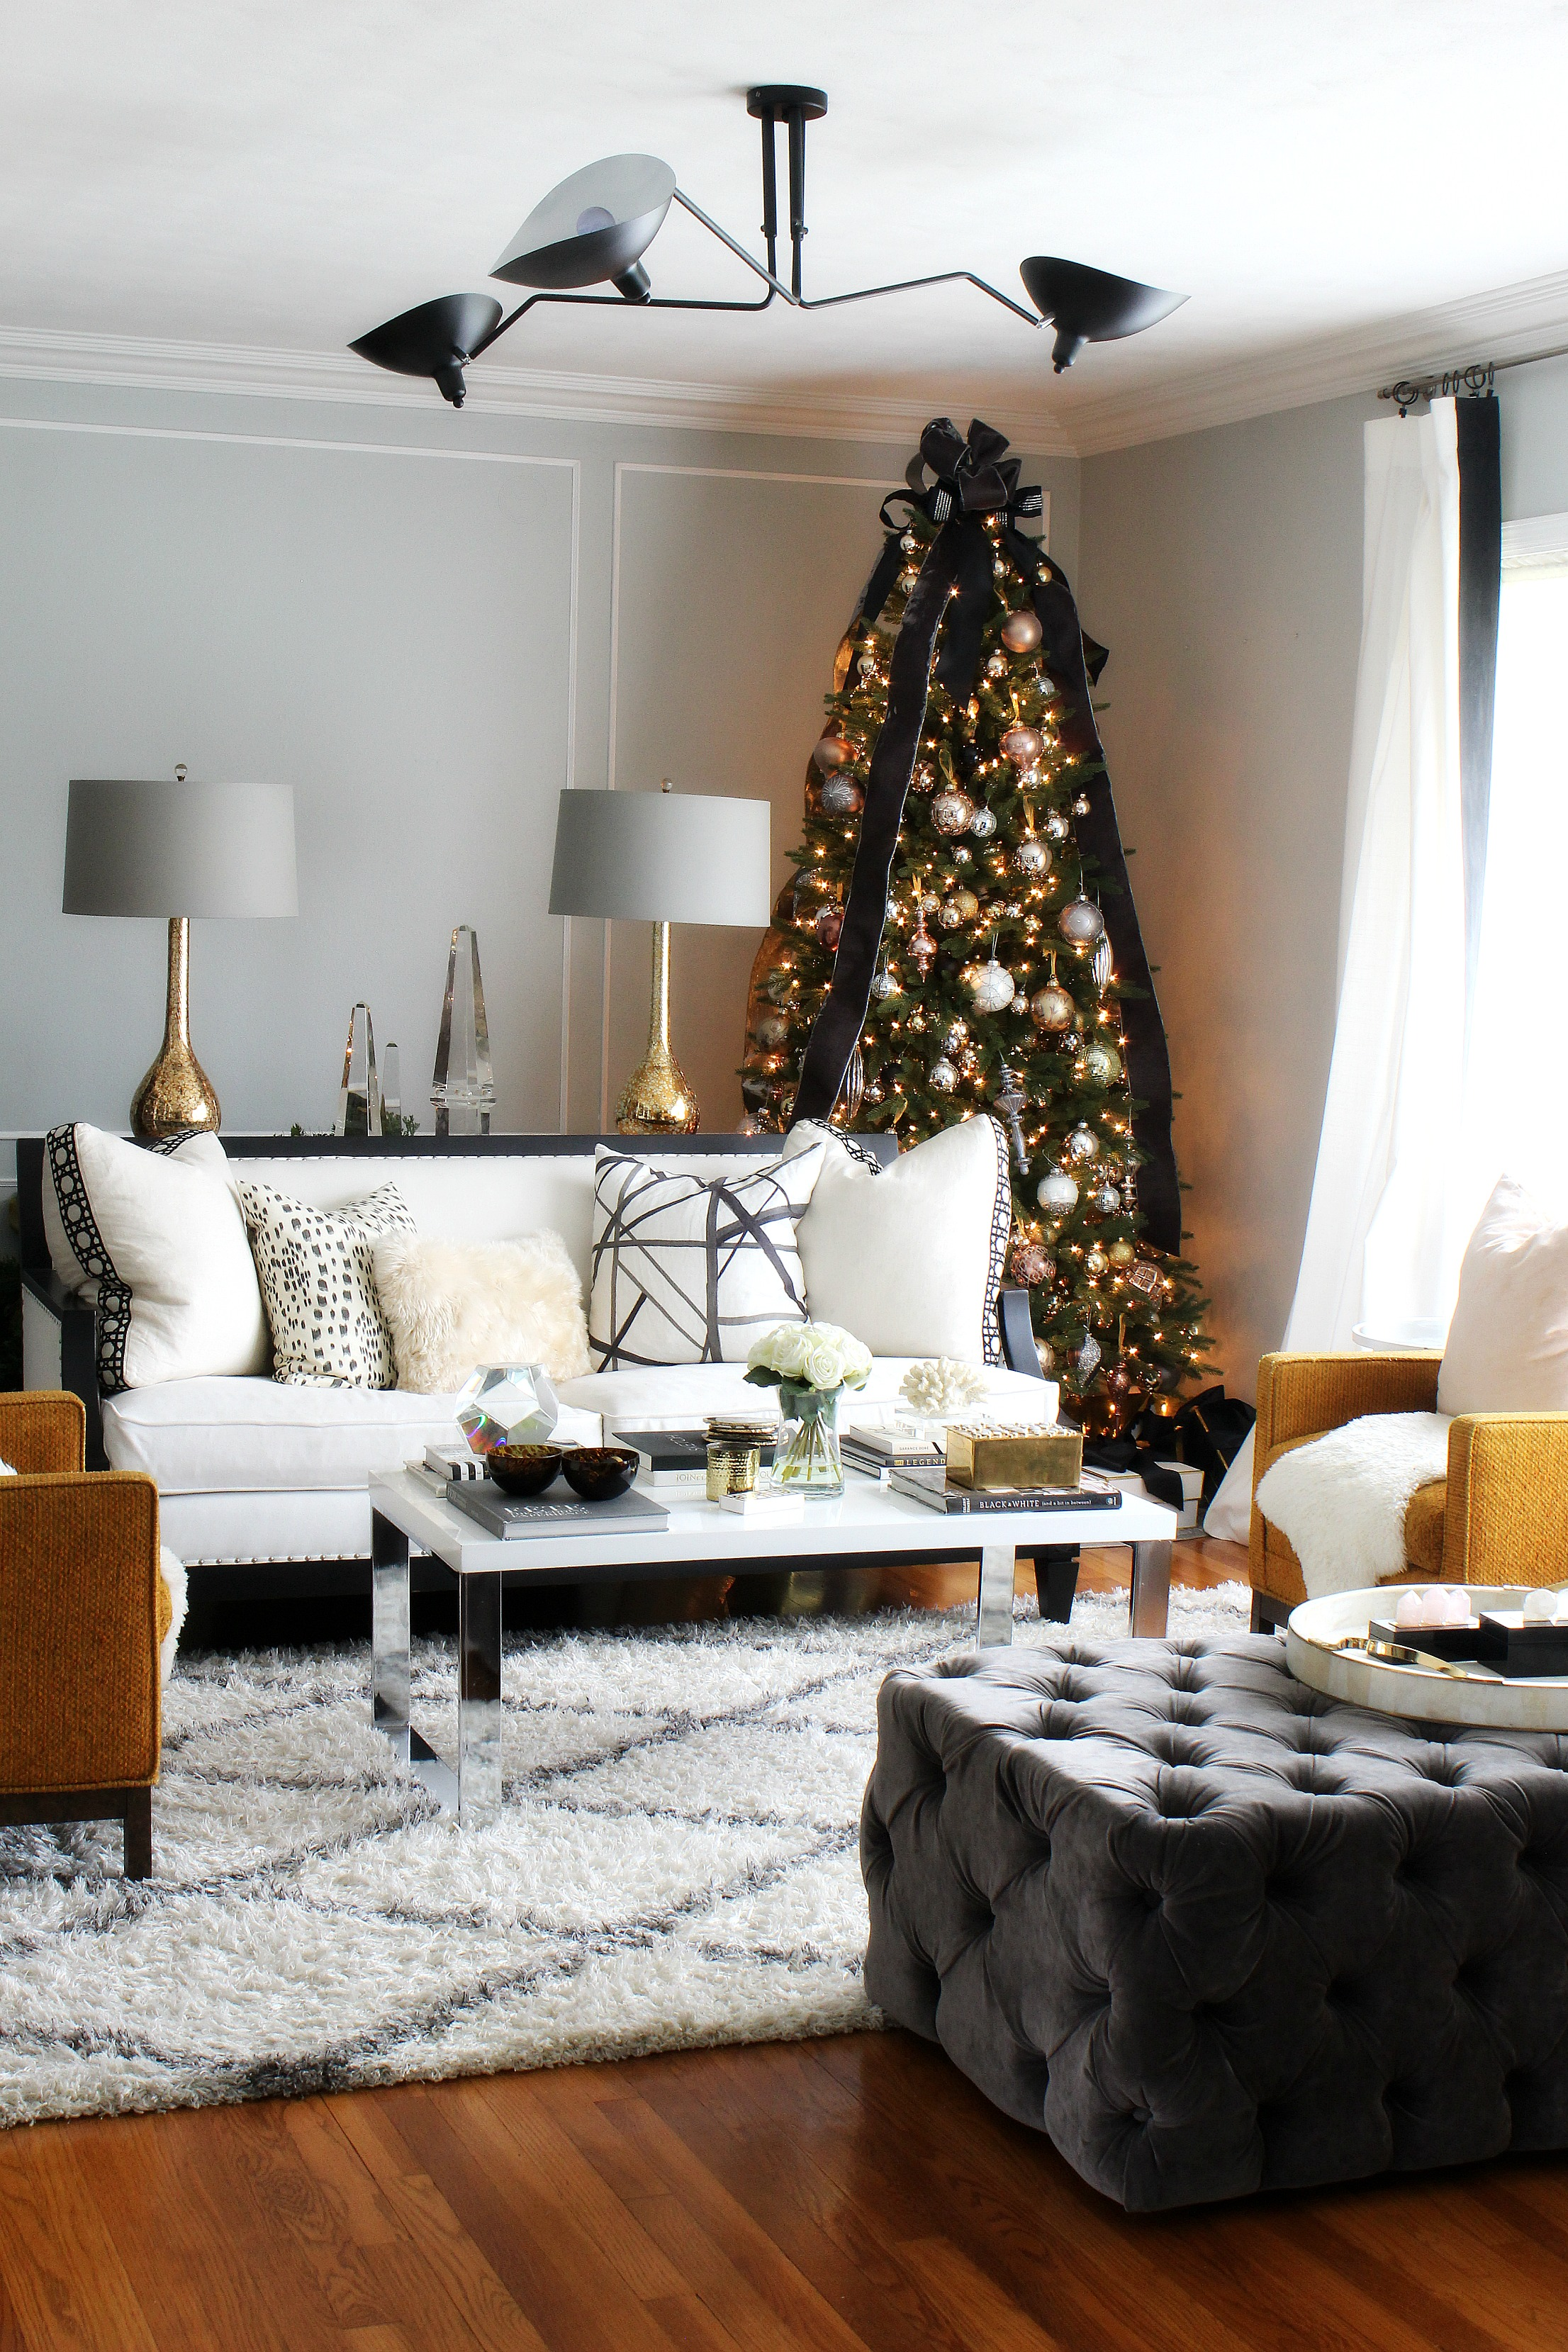 Balsam Hill Tastemakers 2016: sneak peek of my living room by Kristen from Bliss at Home